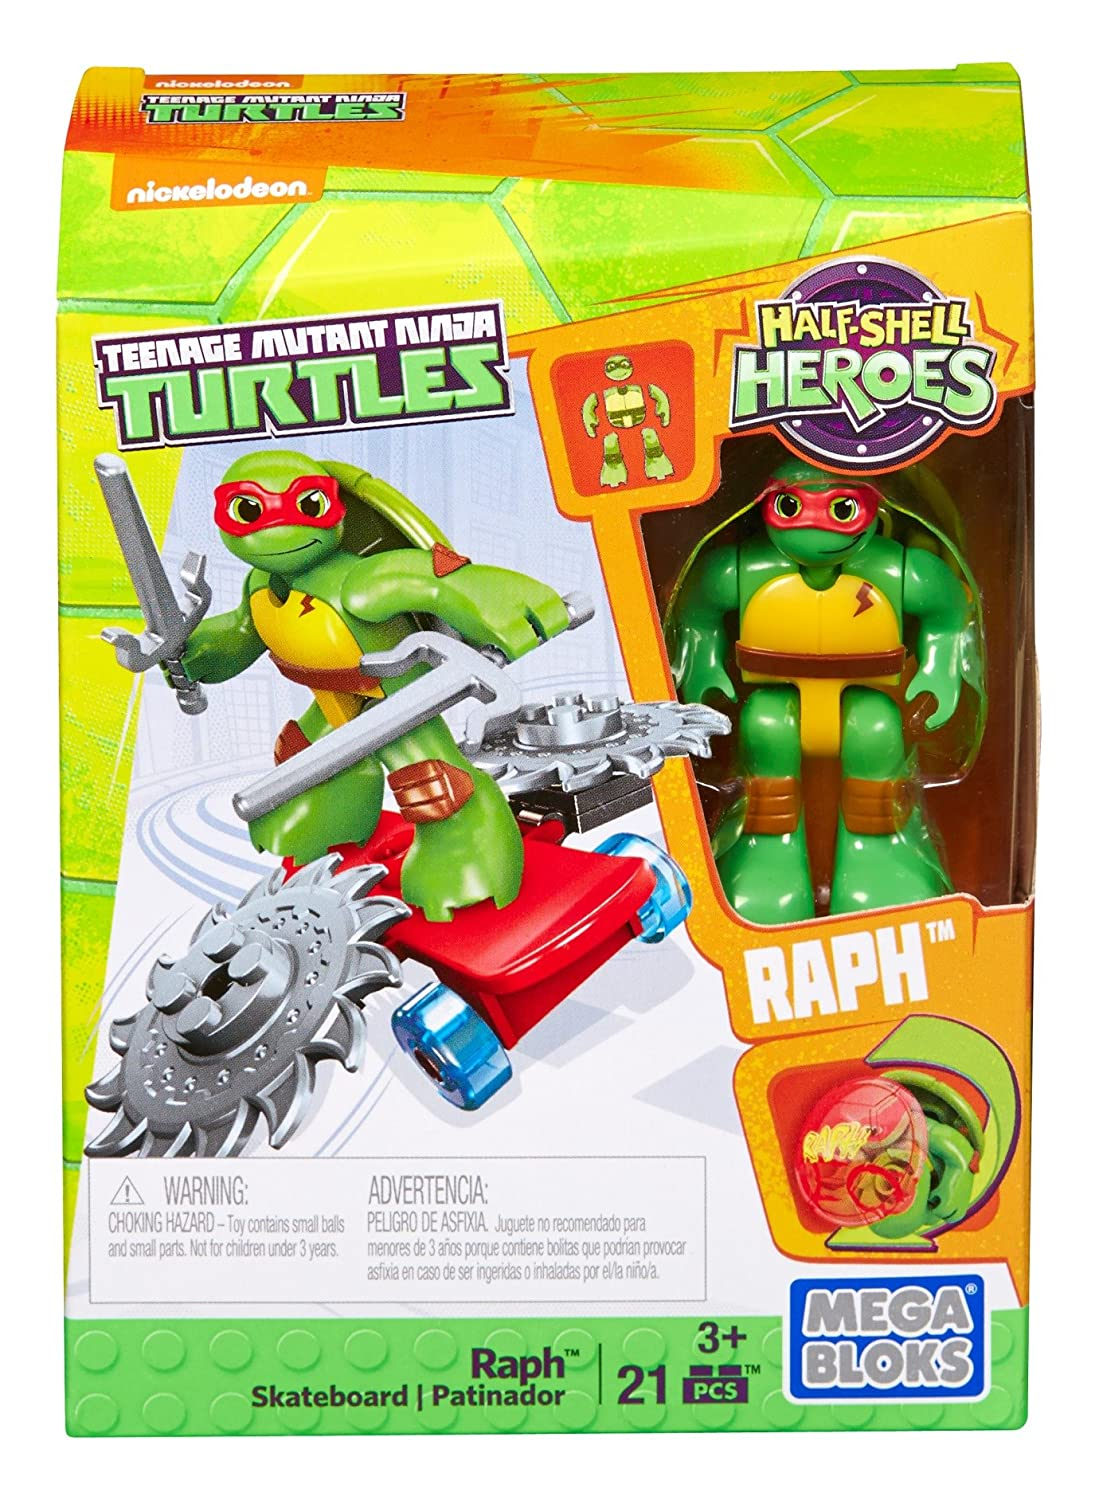 Mega Bloks Teenage Mutant Ninja Turtles Half-Shell Heroes Raph with Skateboard